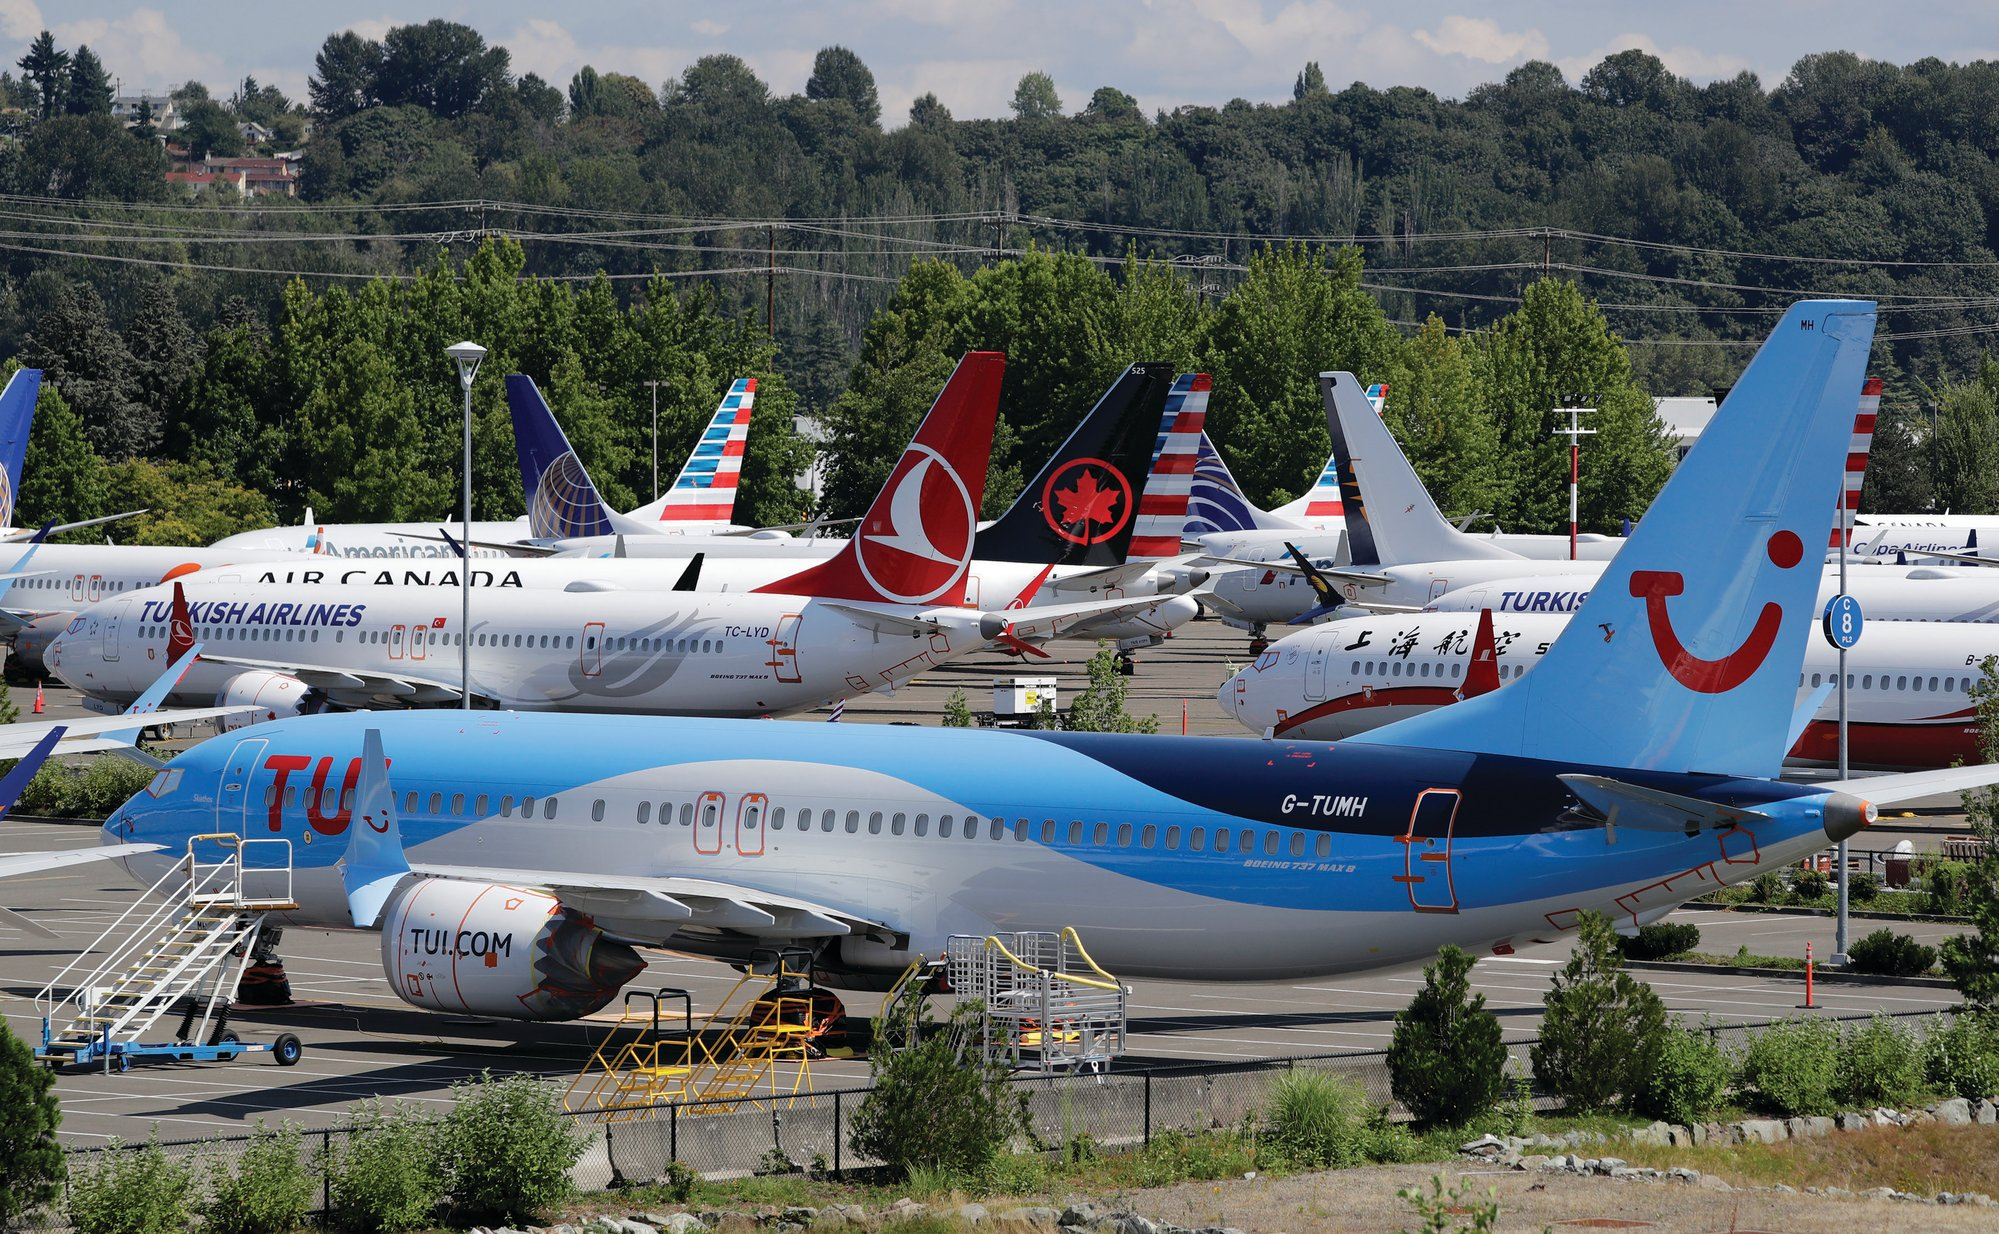 THE ASSOCIATED PRESS  Dozens of grounded Boeing 737 Max airplanes crowd a parking area adjacent to Boeing Field in Seattle. Aviation authorities around the world grounded the plane in March after two fatal crashes.